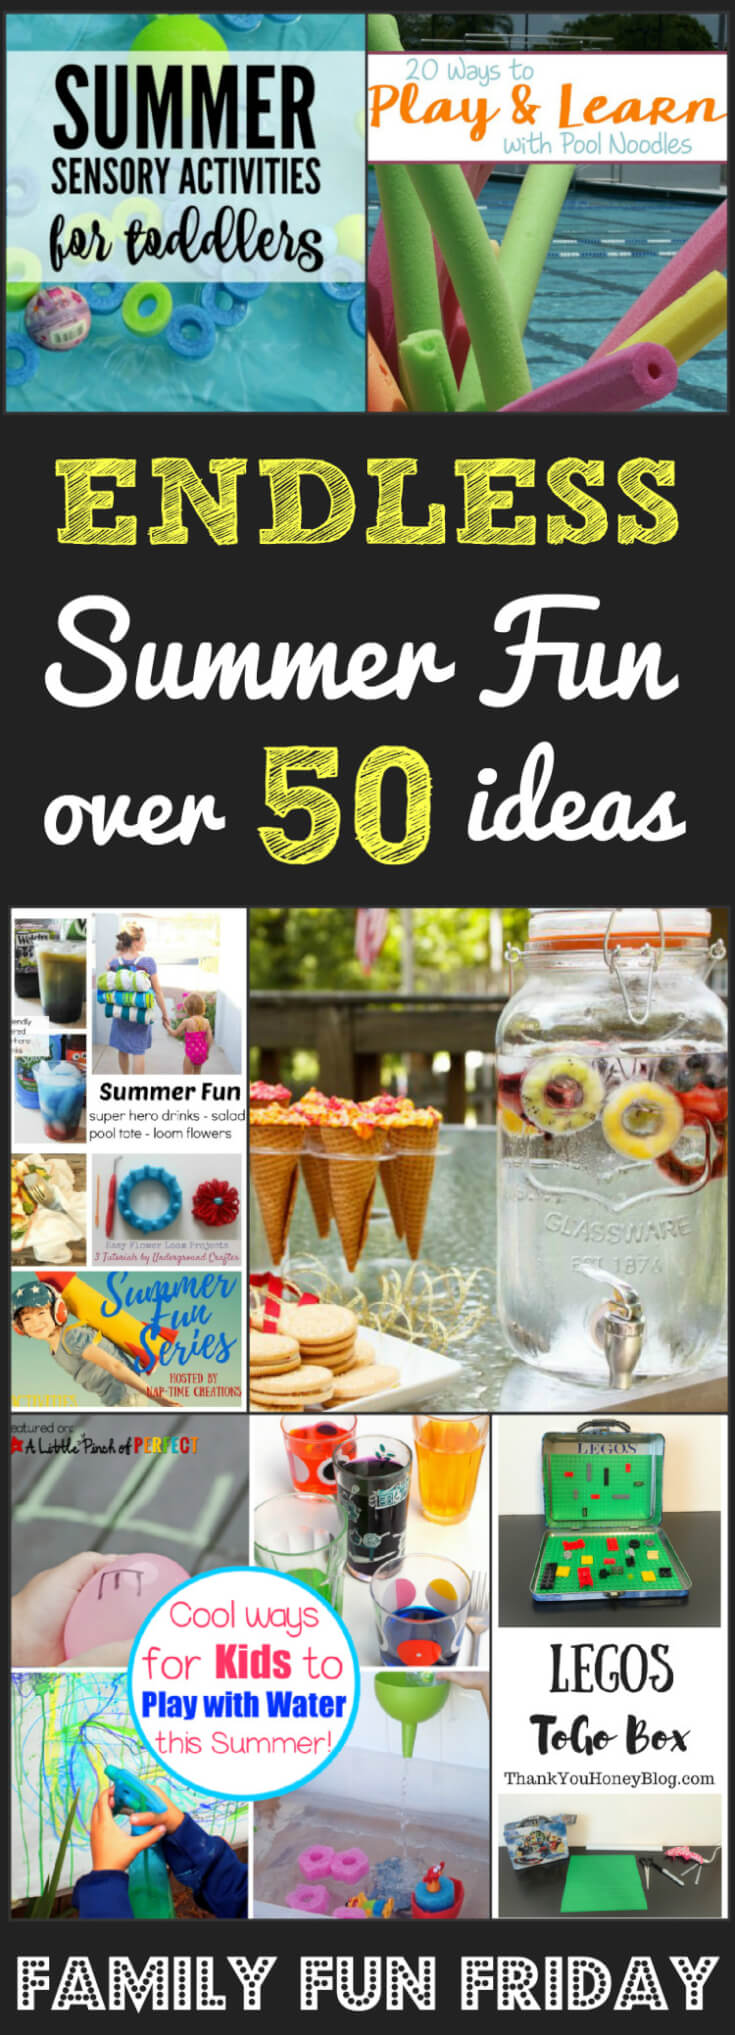 Endless Summer FUN with over 50 ideas for play in water and sun! Family Fun Friday